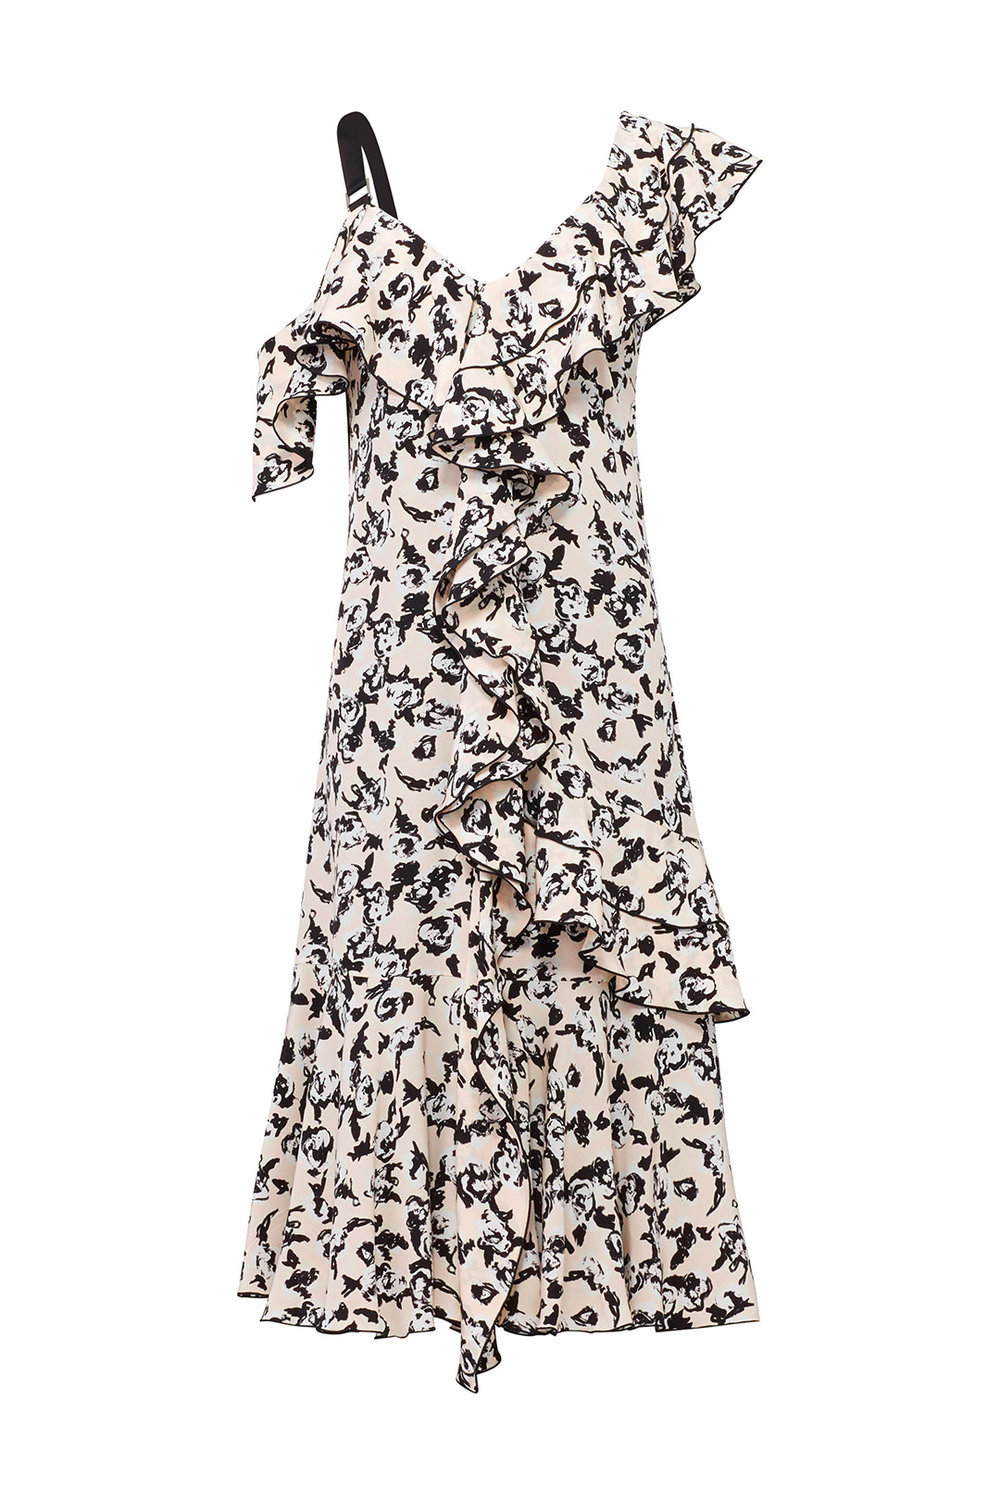 Scribble Rose Dress by Proenza Schouler Proenza Schouler Pansy Long Sleeve Dress from Rent the Runway | Top US fashion blog, The Borrowed Babes features the Best Spring Floral Dresses